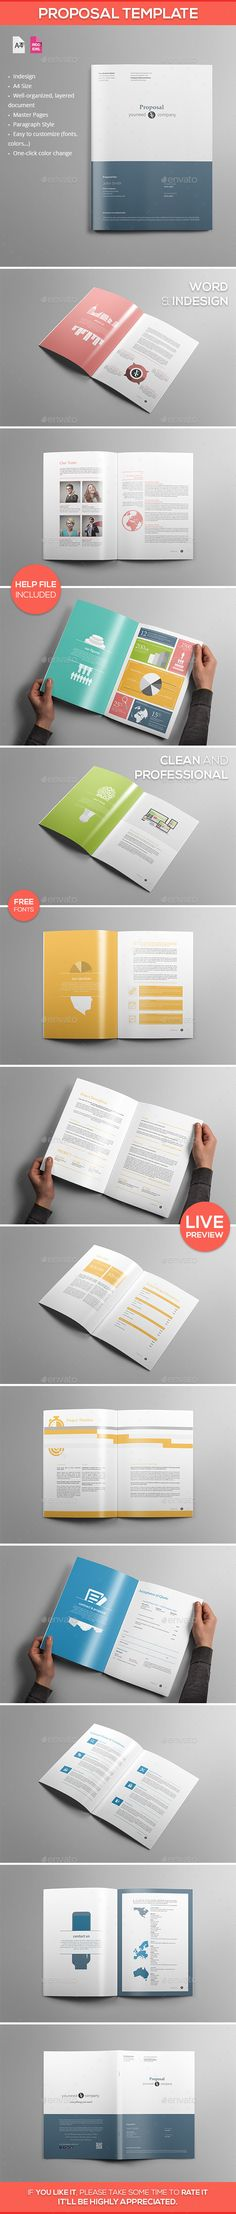 Web Design Proposal Proposals, Proposal templates and Project - design proposal